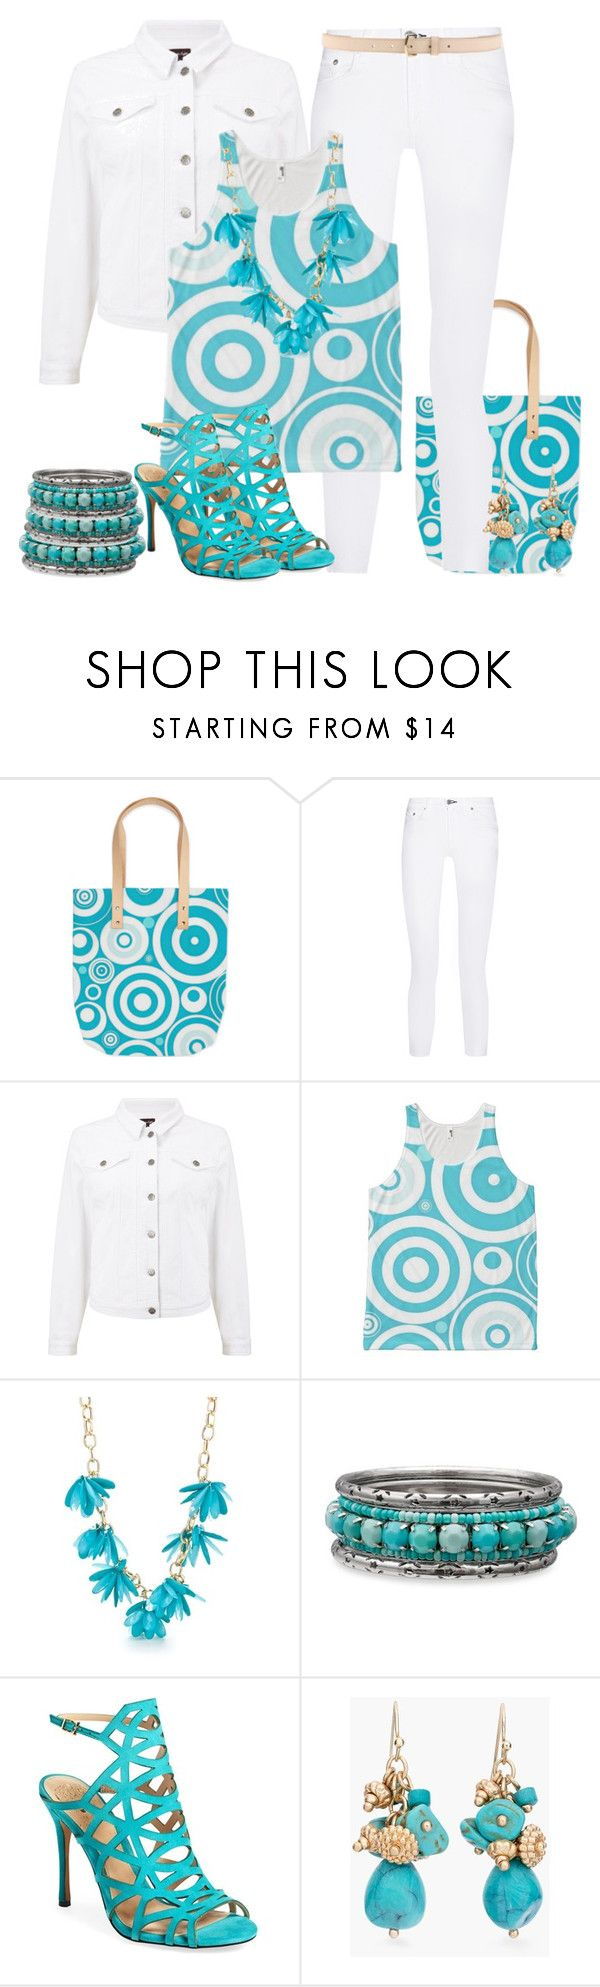 """Untitled #1266"" by mrsdarlene ❤ liked on Polyvore featuring rag & bone, Phase Eight, New Directions, Vince Camuto, Chico's and Dsquared2"